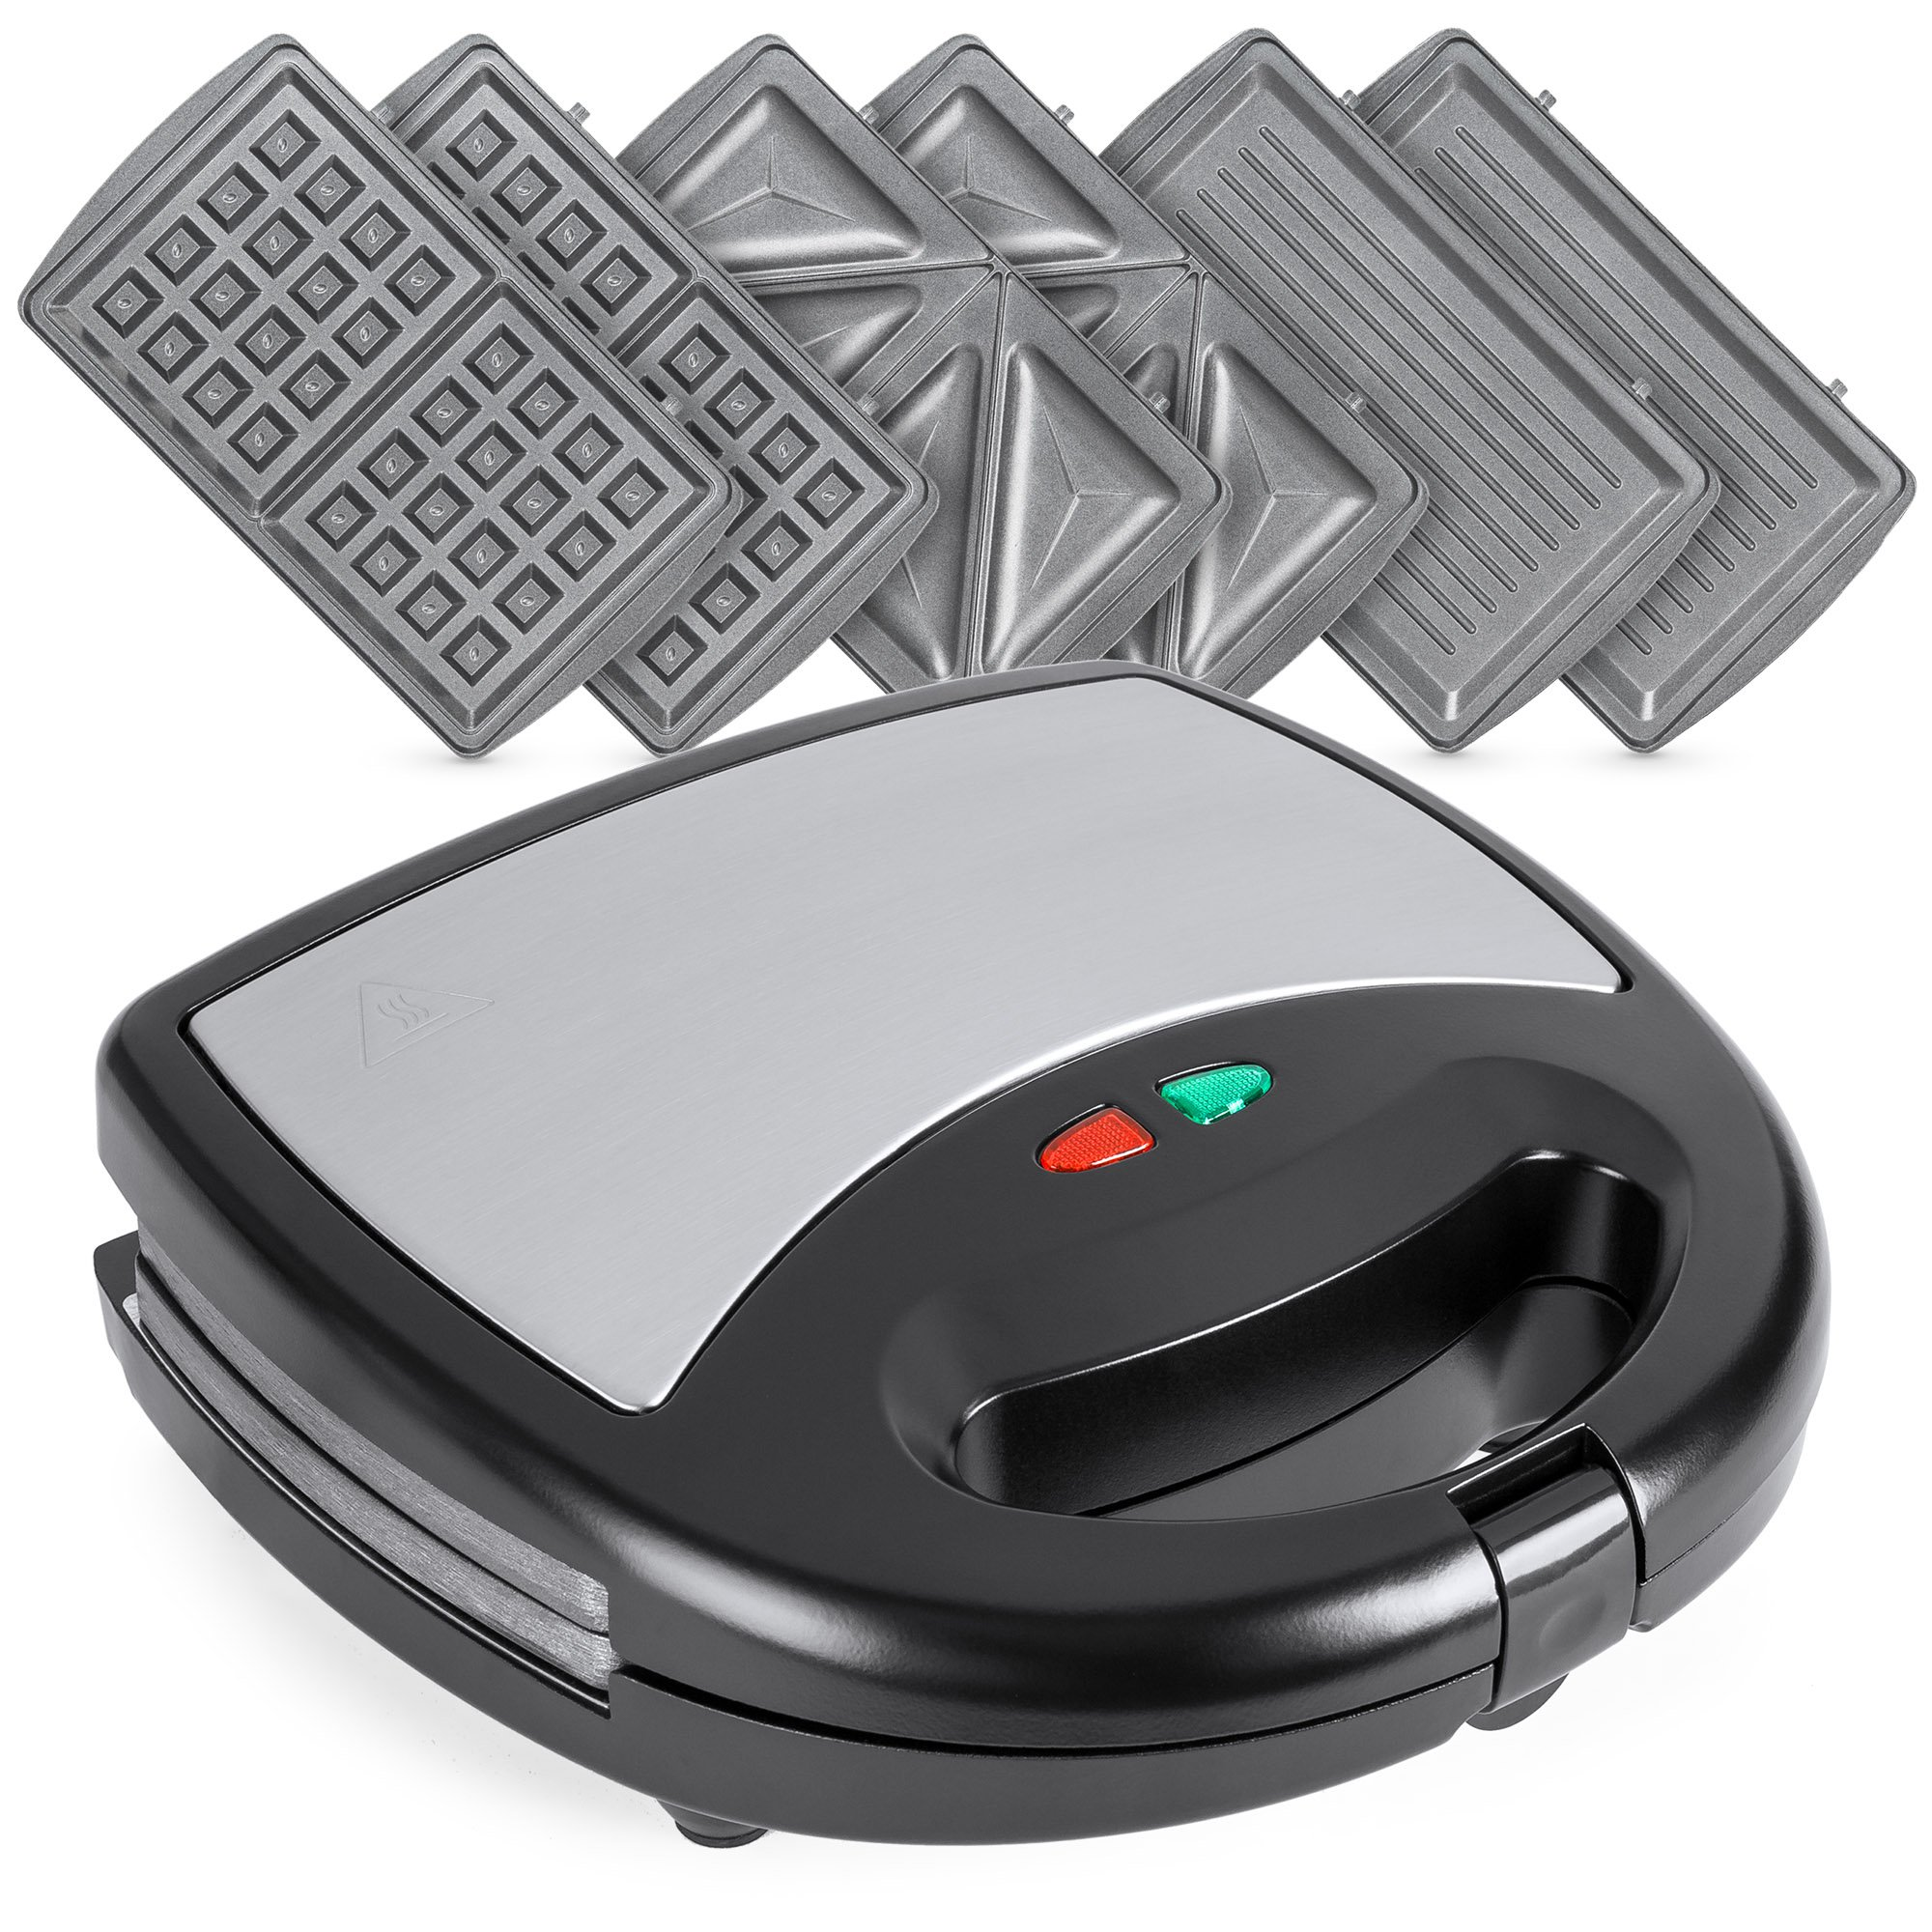 Best Choice Products 3-in-1 750W Dishwasher Safe Non-Stick Stainless Steel Electric Sandwich Waffle Panini Maker Press w/ 3 Interchangeable Grill Plates, Auto Shut Down, LED Indicator Light, Black by Best Choice Products